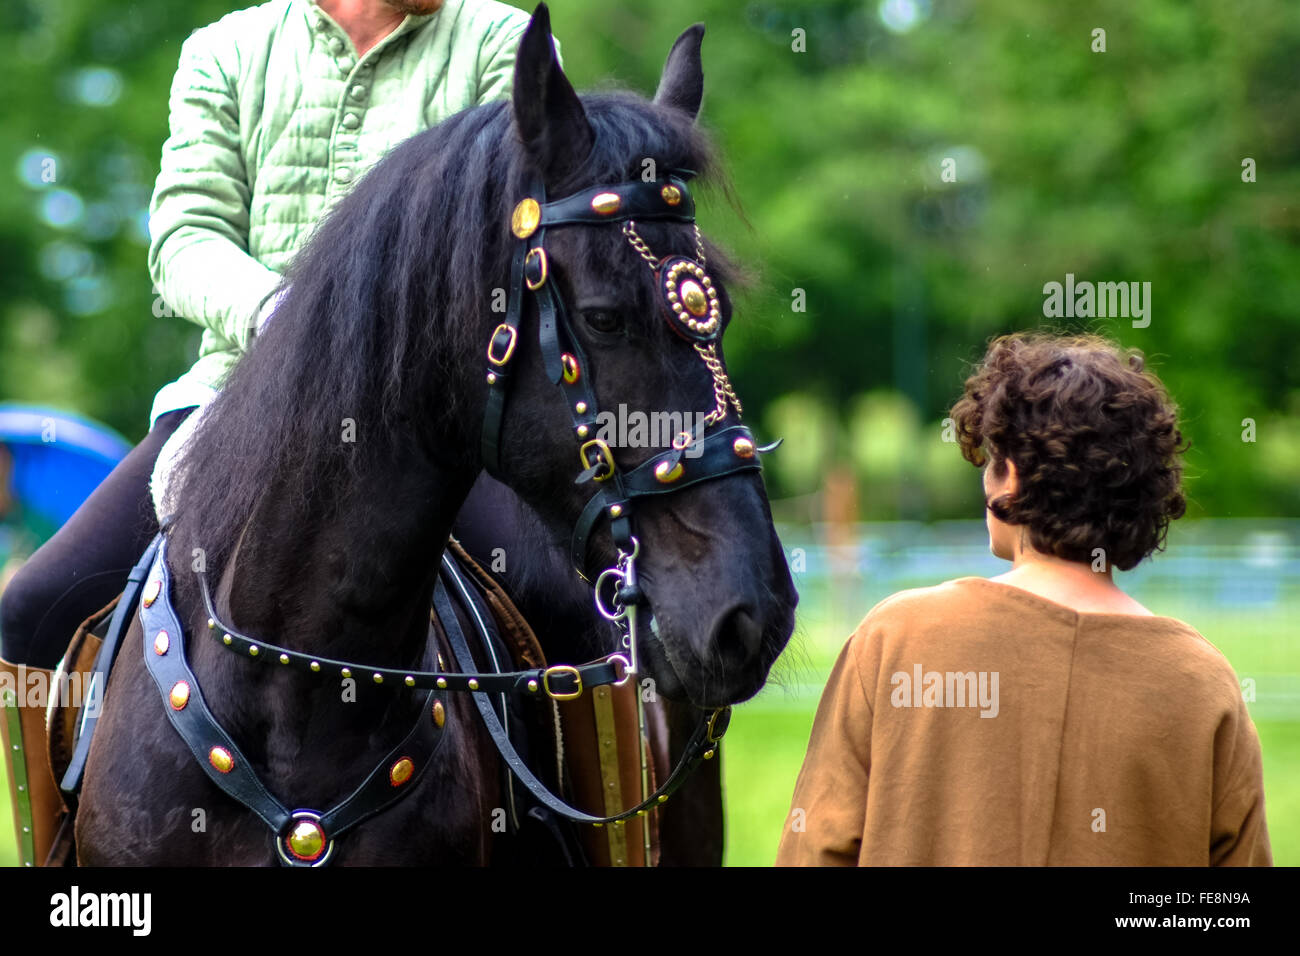 Florence, Italy - April 27, 2014 - Candid shot taken during the famous games of Carnasciale, this year having place - Stock Image